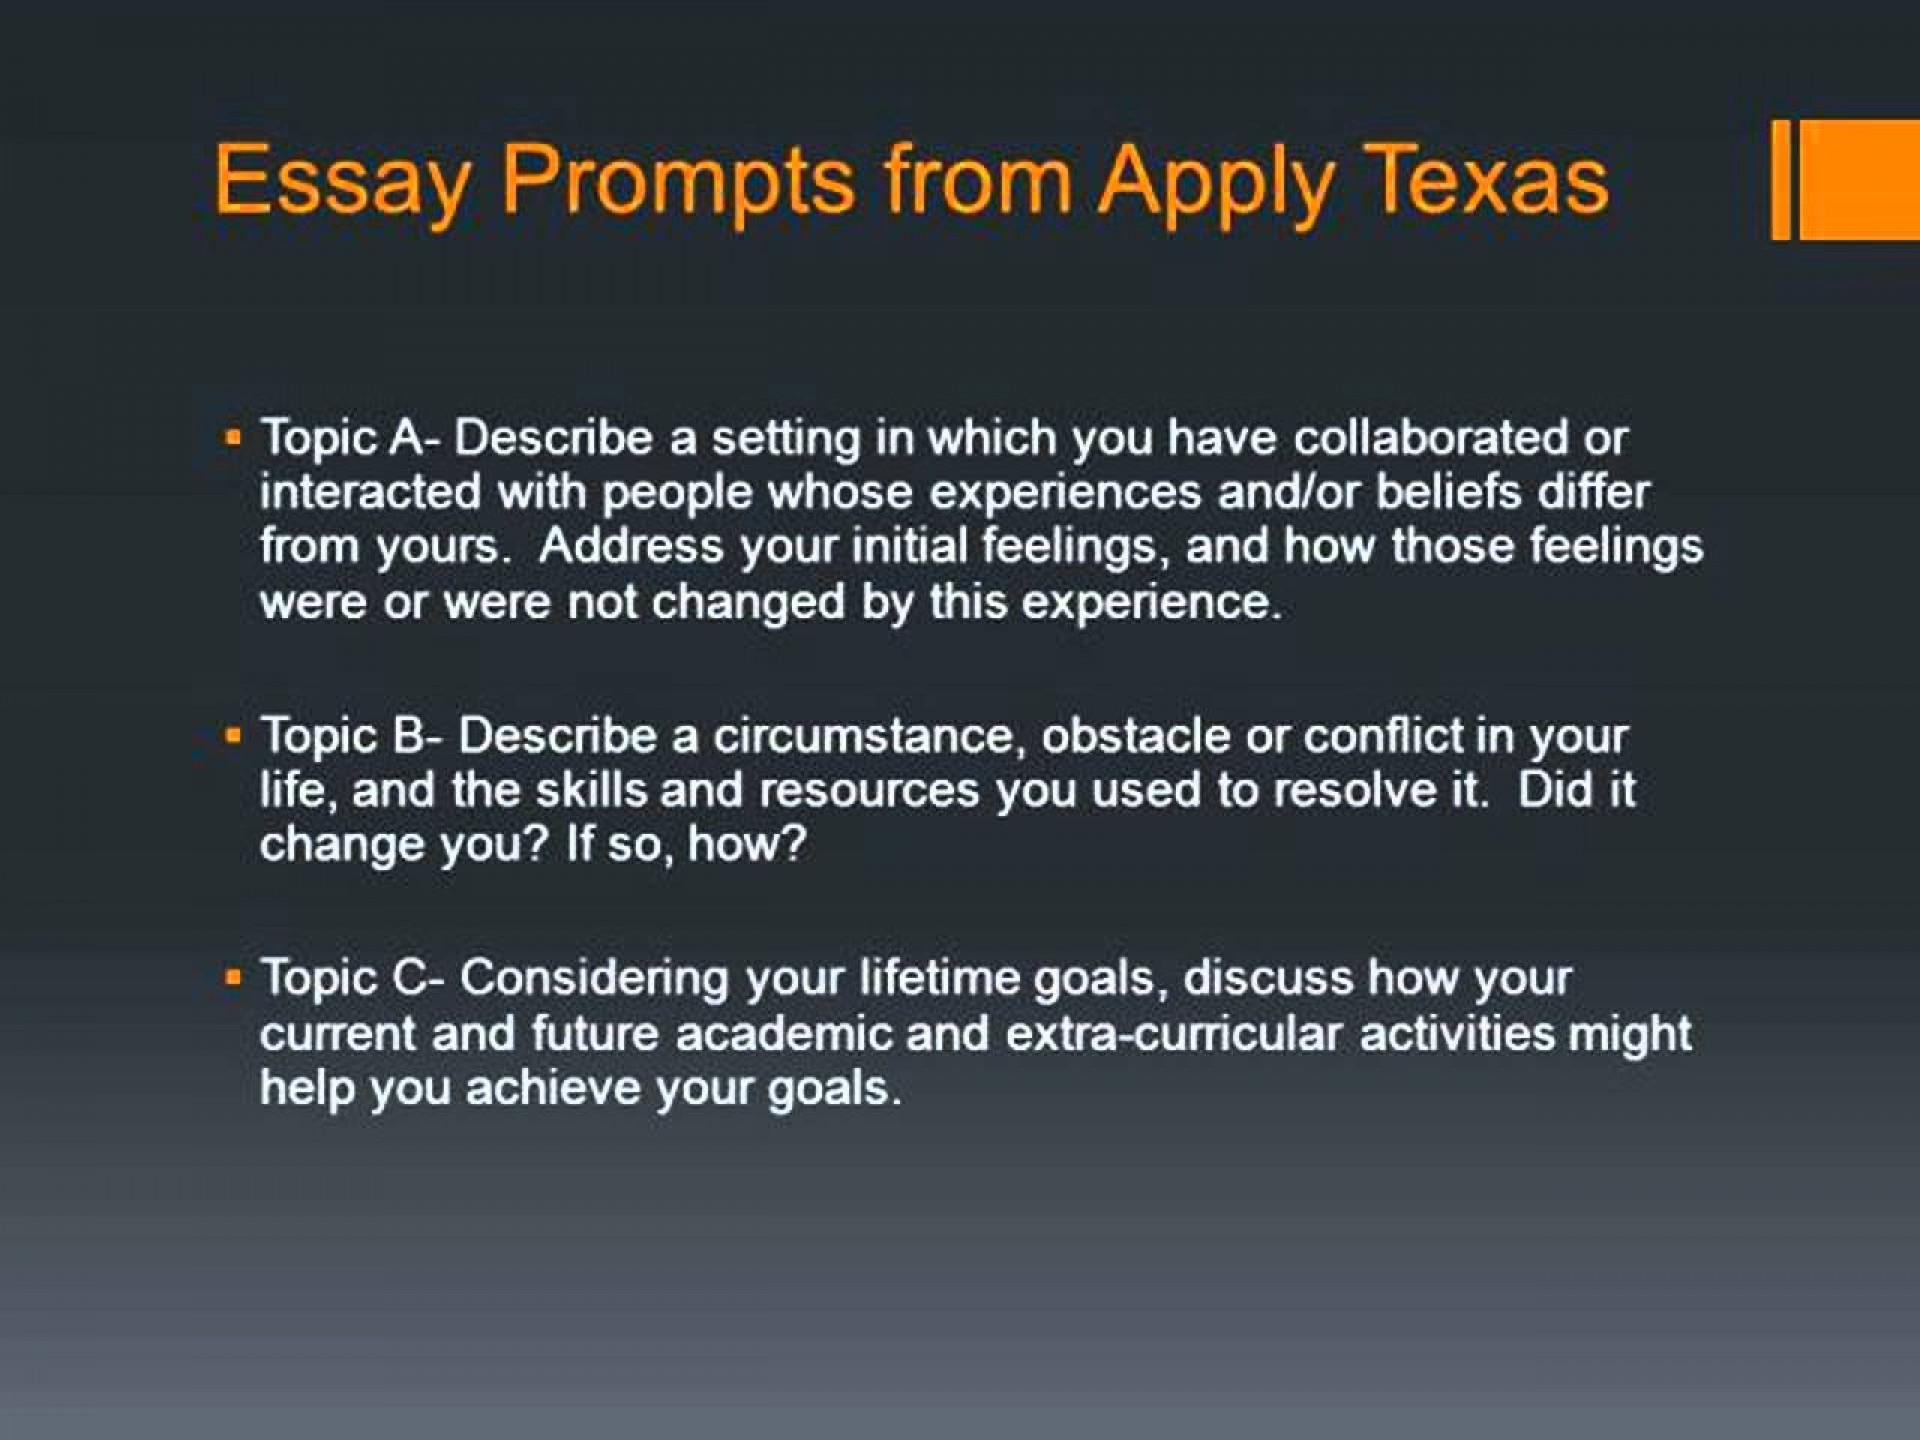 002 Apply Texas Essay Prompts Youtube Topic Examples Maxresde Example Wonderful Applytexas 2018-19 Prompt C Ut Austin 1920